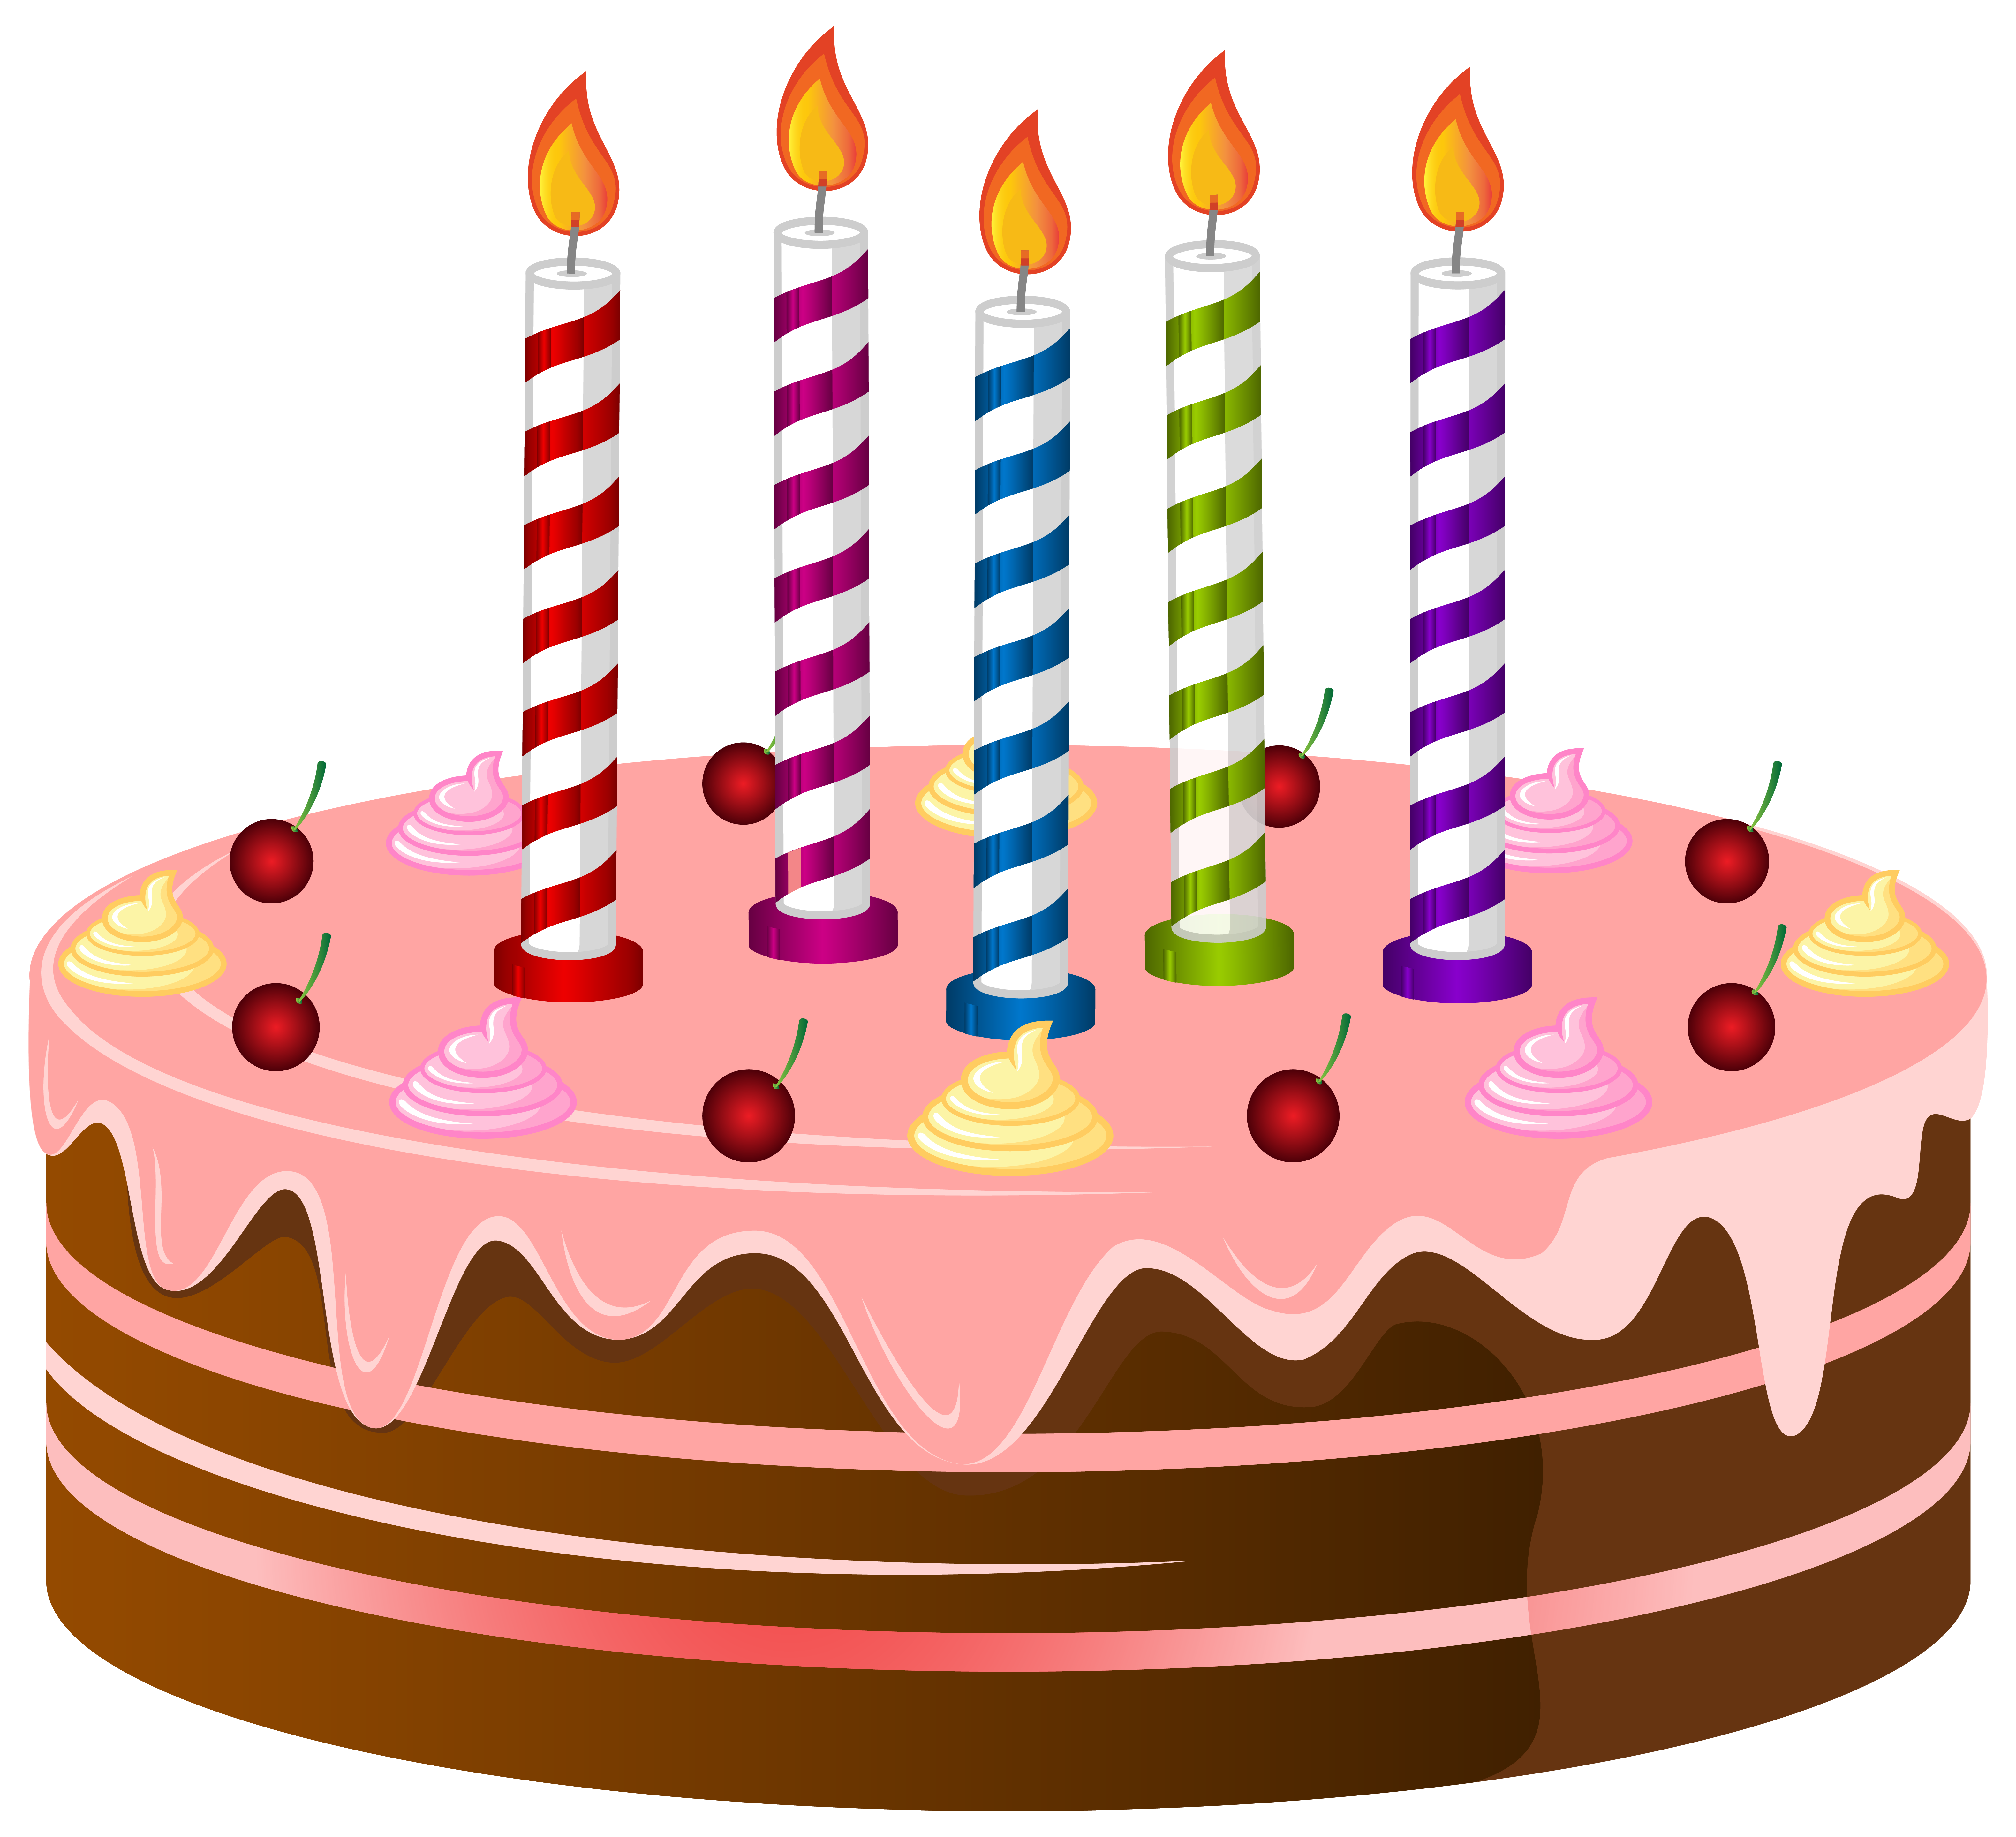 freeuse library Cocao birthday cake png. Baked goods clipart clip art.